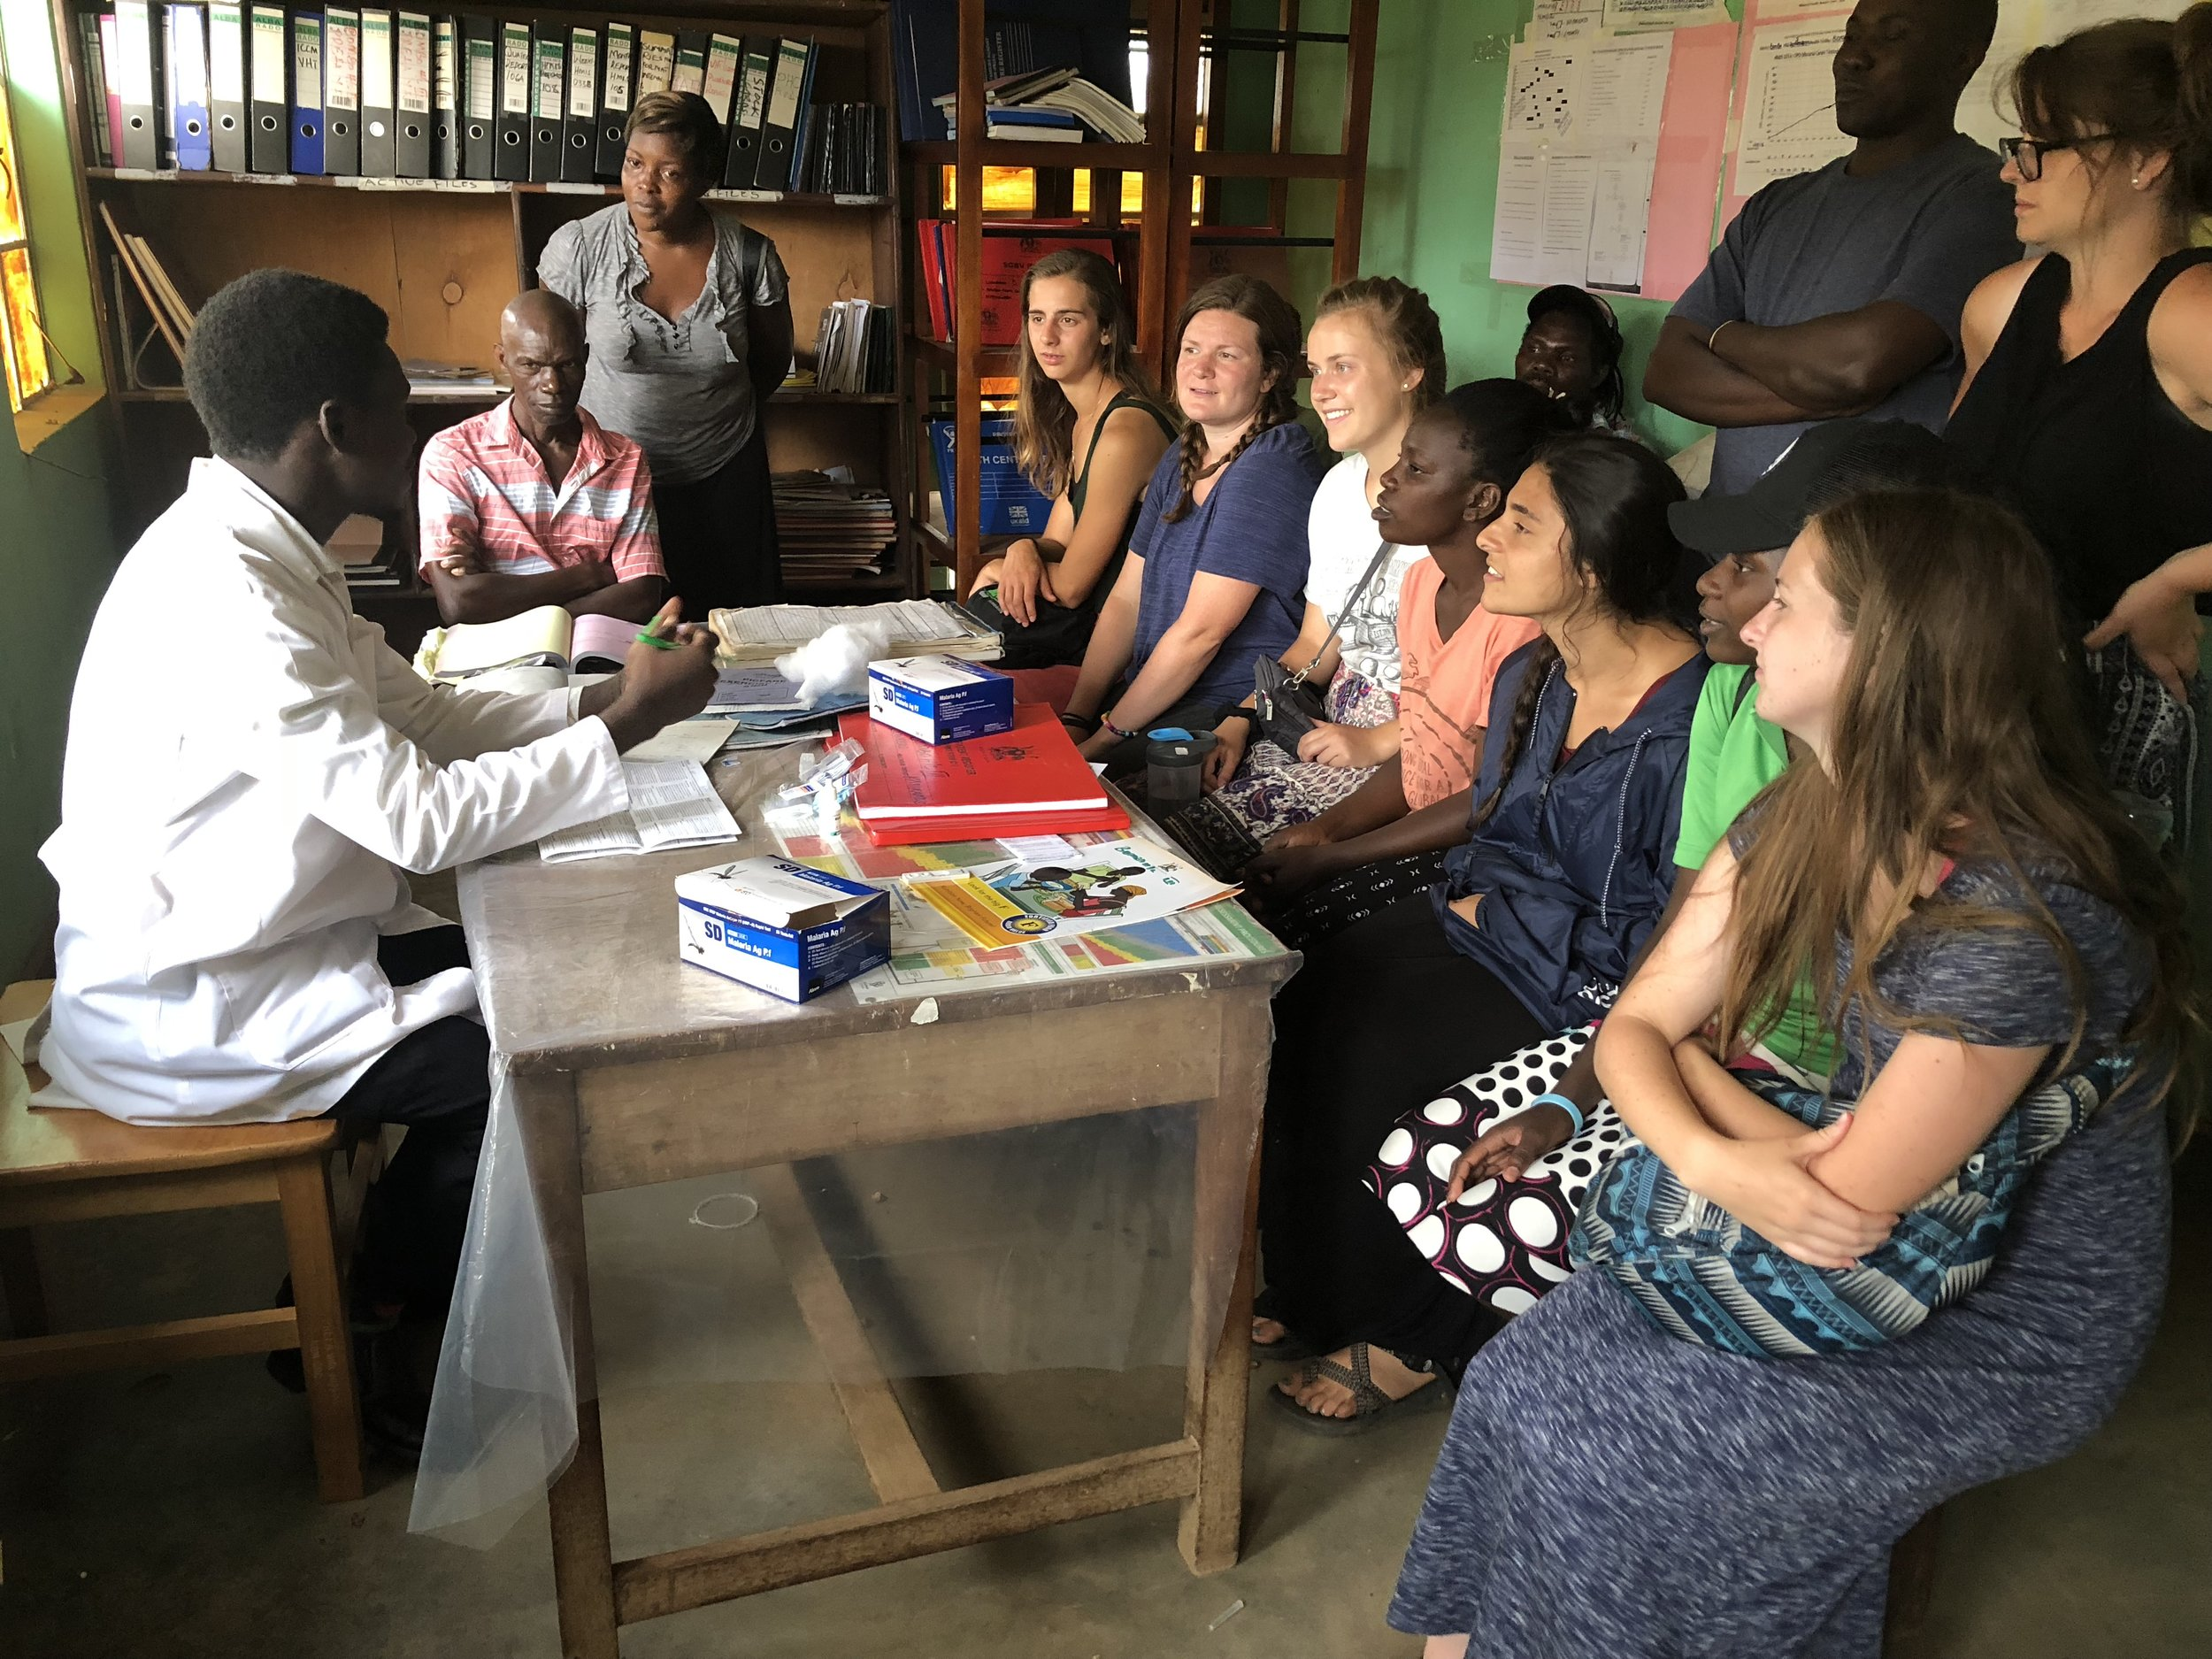 During one particular visit to a medical center, interns learned about the various sicknesses and diseases that people in East Africa face, as well as the shortages and struggles that hospitals and clinics face in trying to meet the overwhelming need.